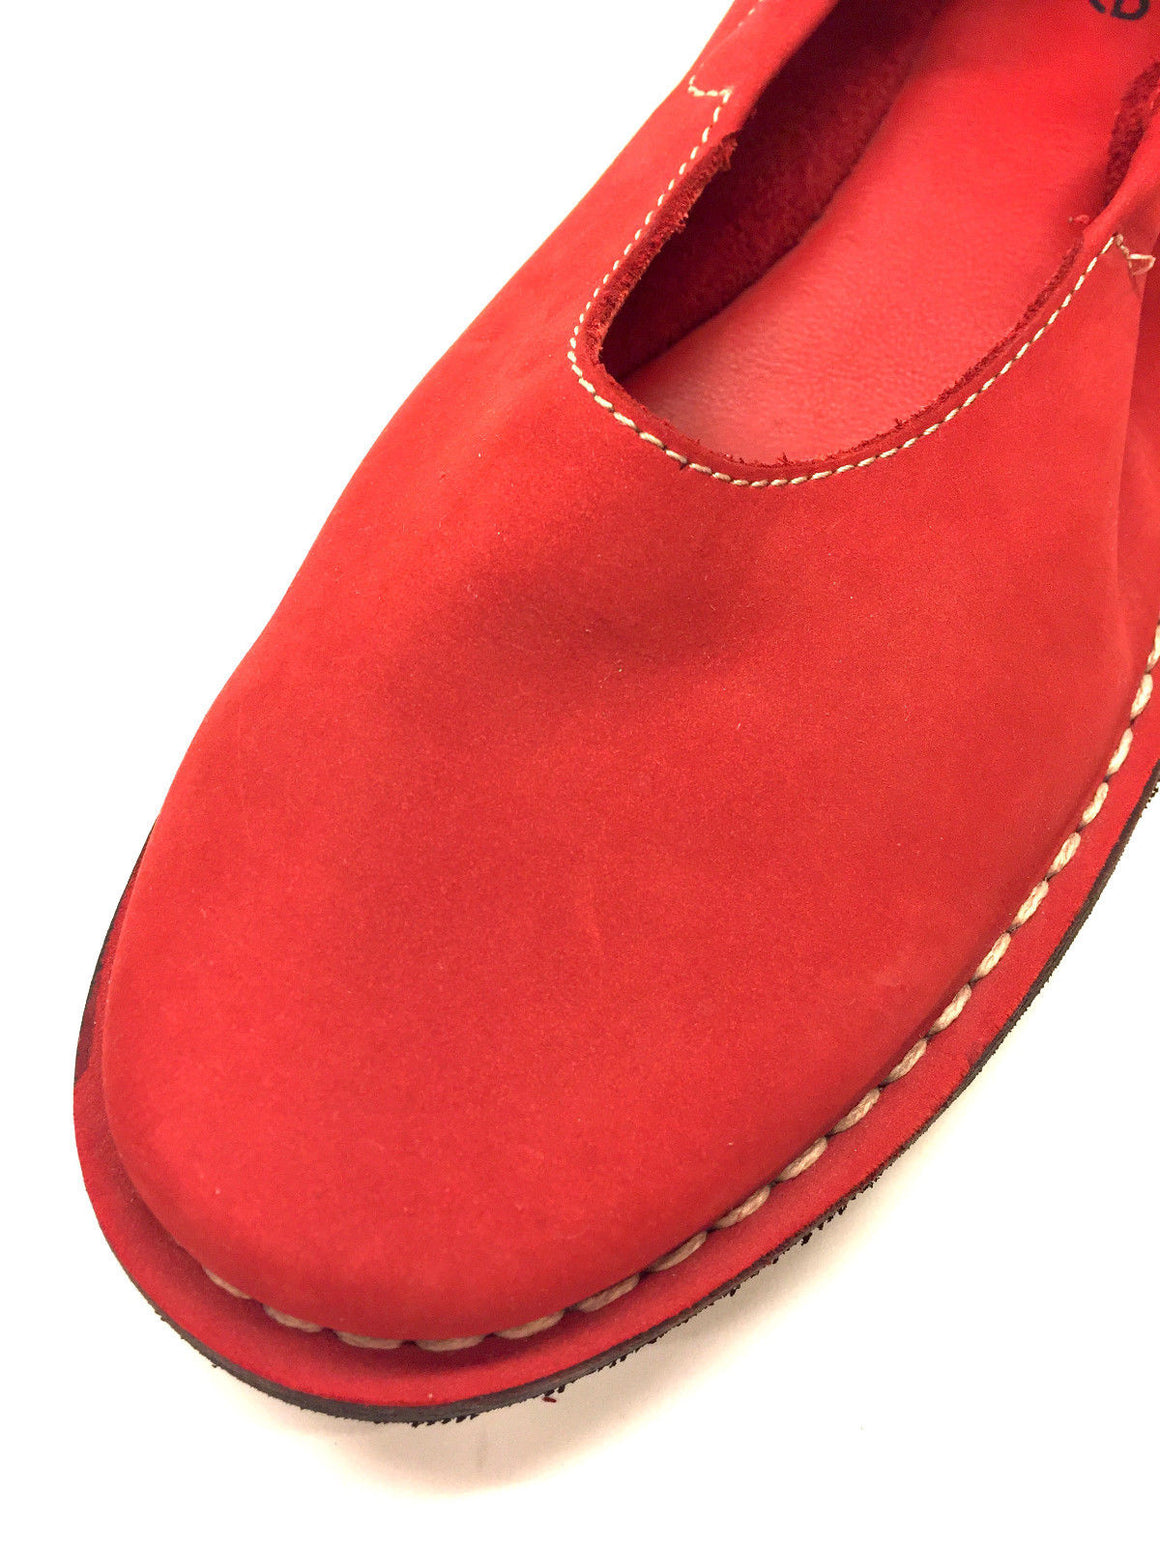 bisbiz.com ARCHE  Red Suede Ankle-Strap Ballet Flats Shoes Size: 10M - Bis Luxury Resale